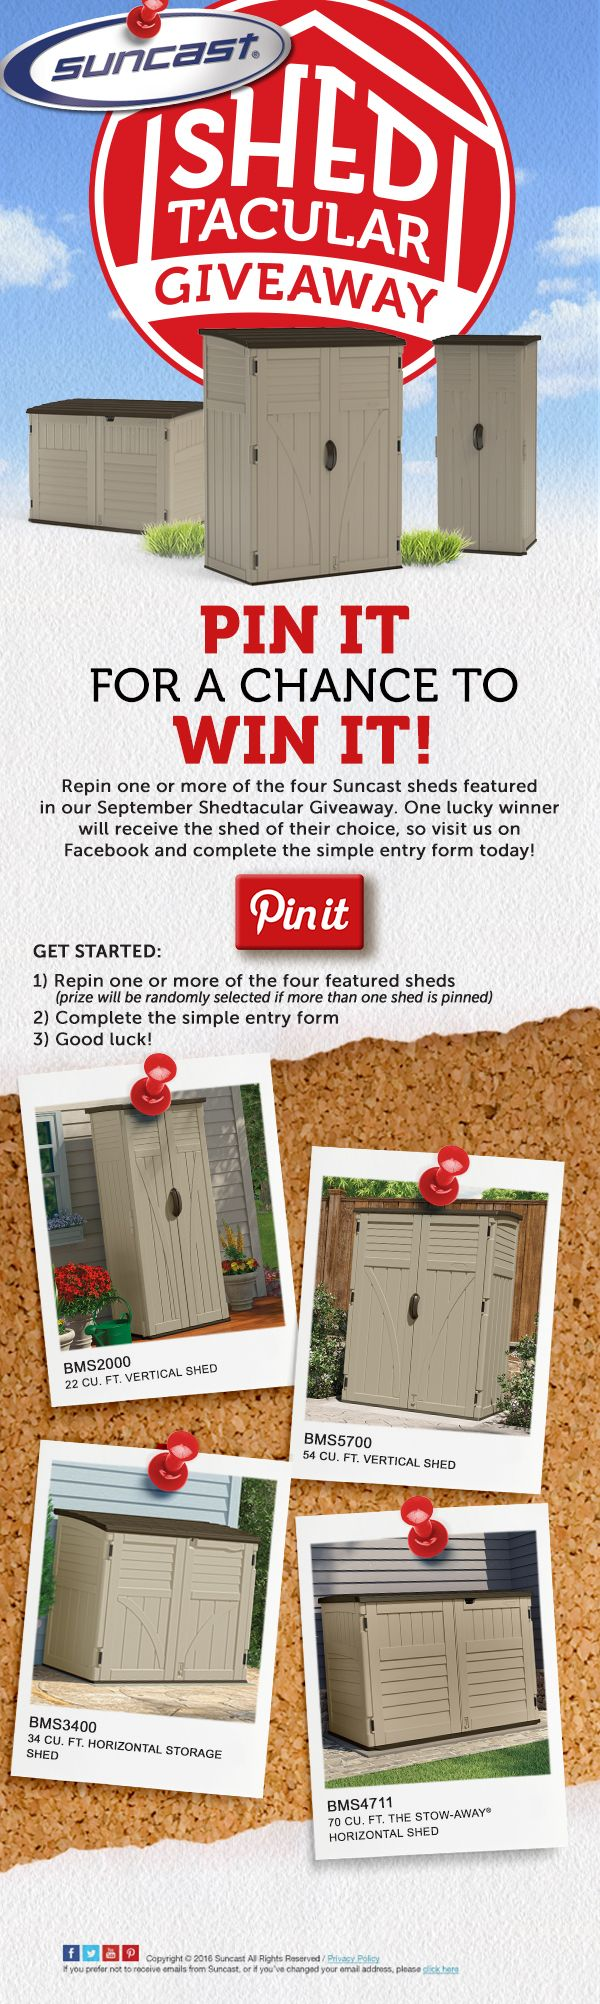 Repin one or more of the four Suncast sheds featured in our September Shedtacular Giveaway. One lucky winner will receive the shed of their choice. Complete the simple entry form today!